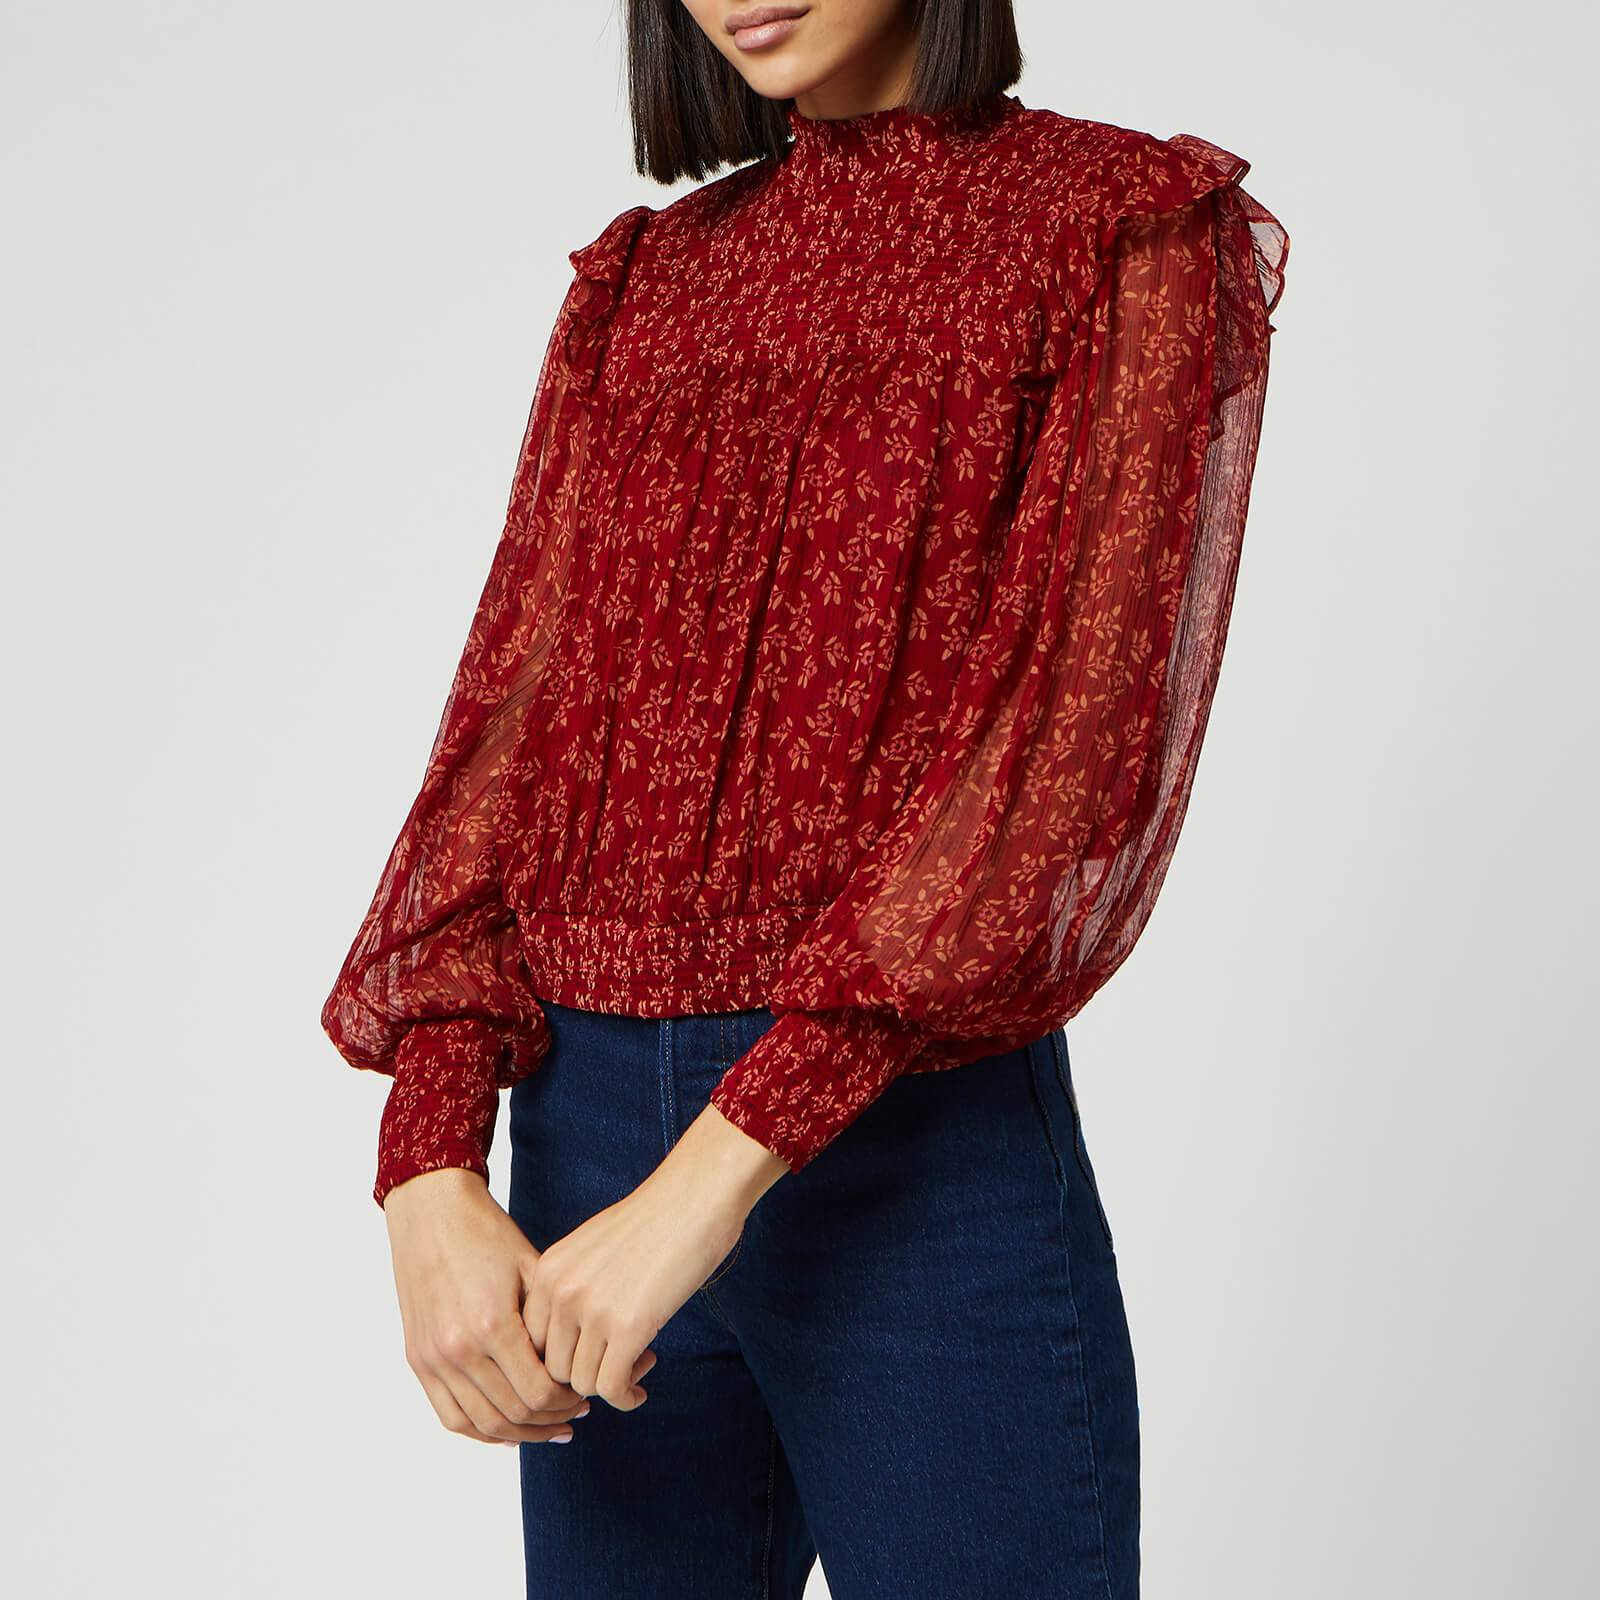 Free People Women's Roma Blouse - Red - L